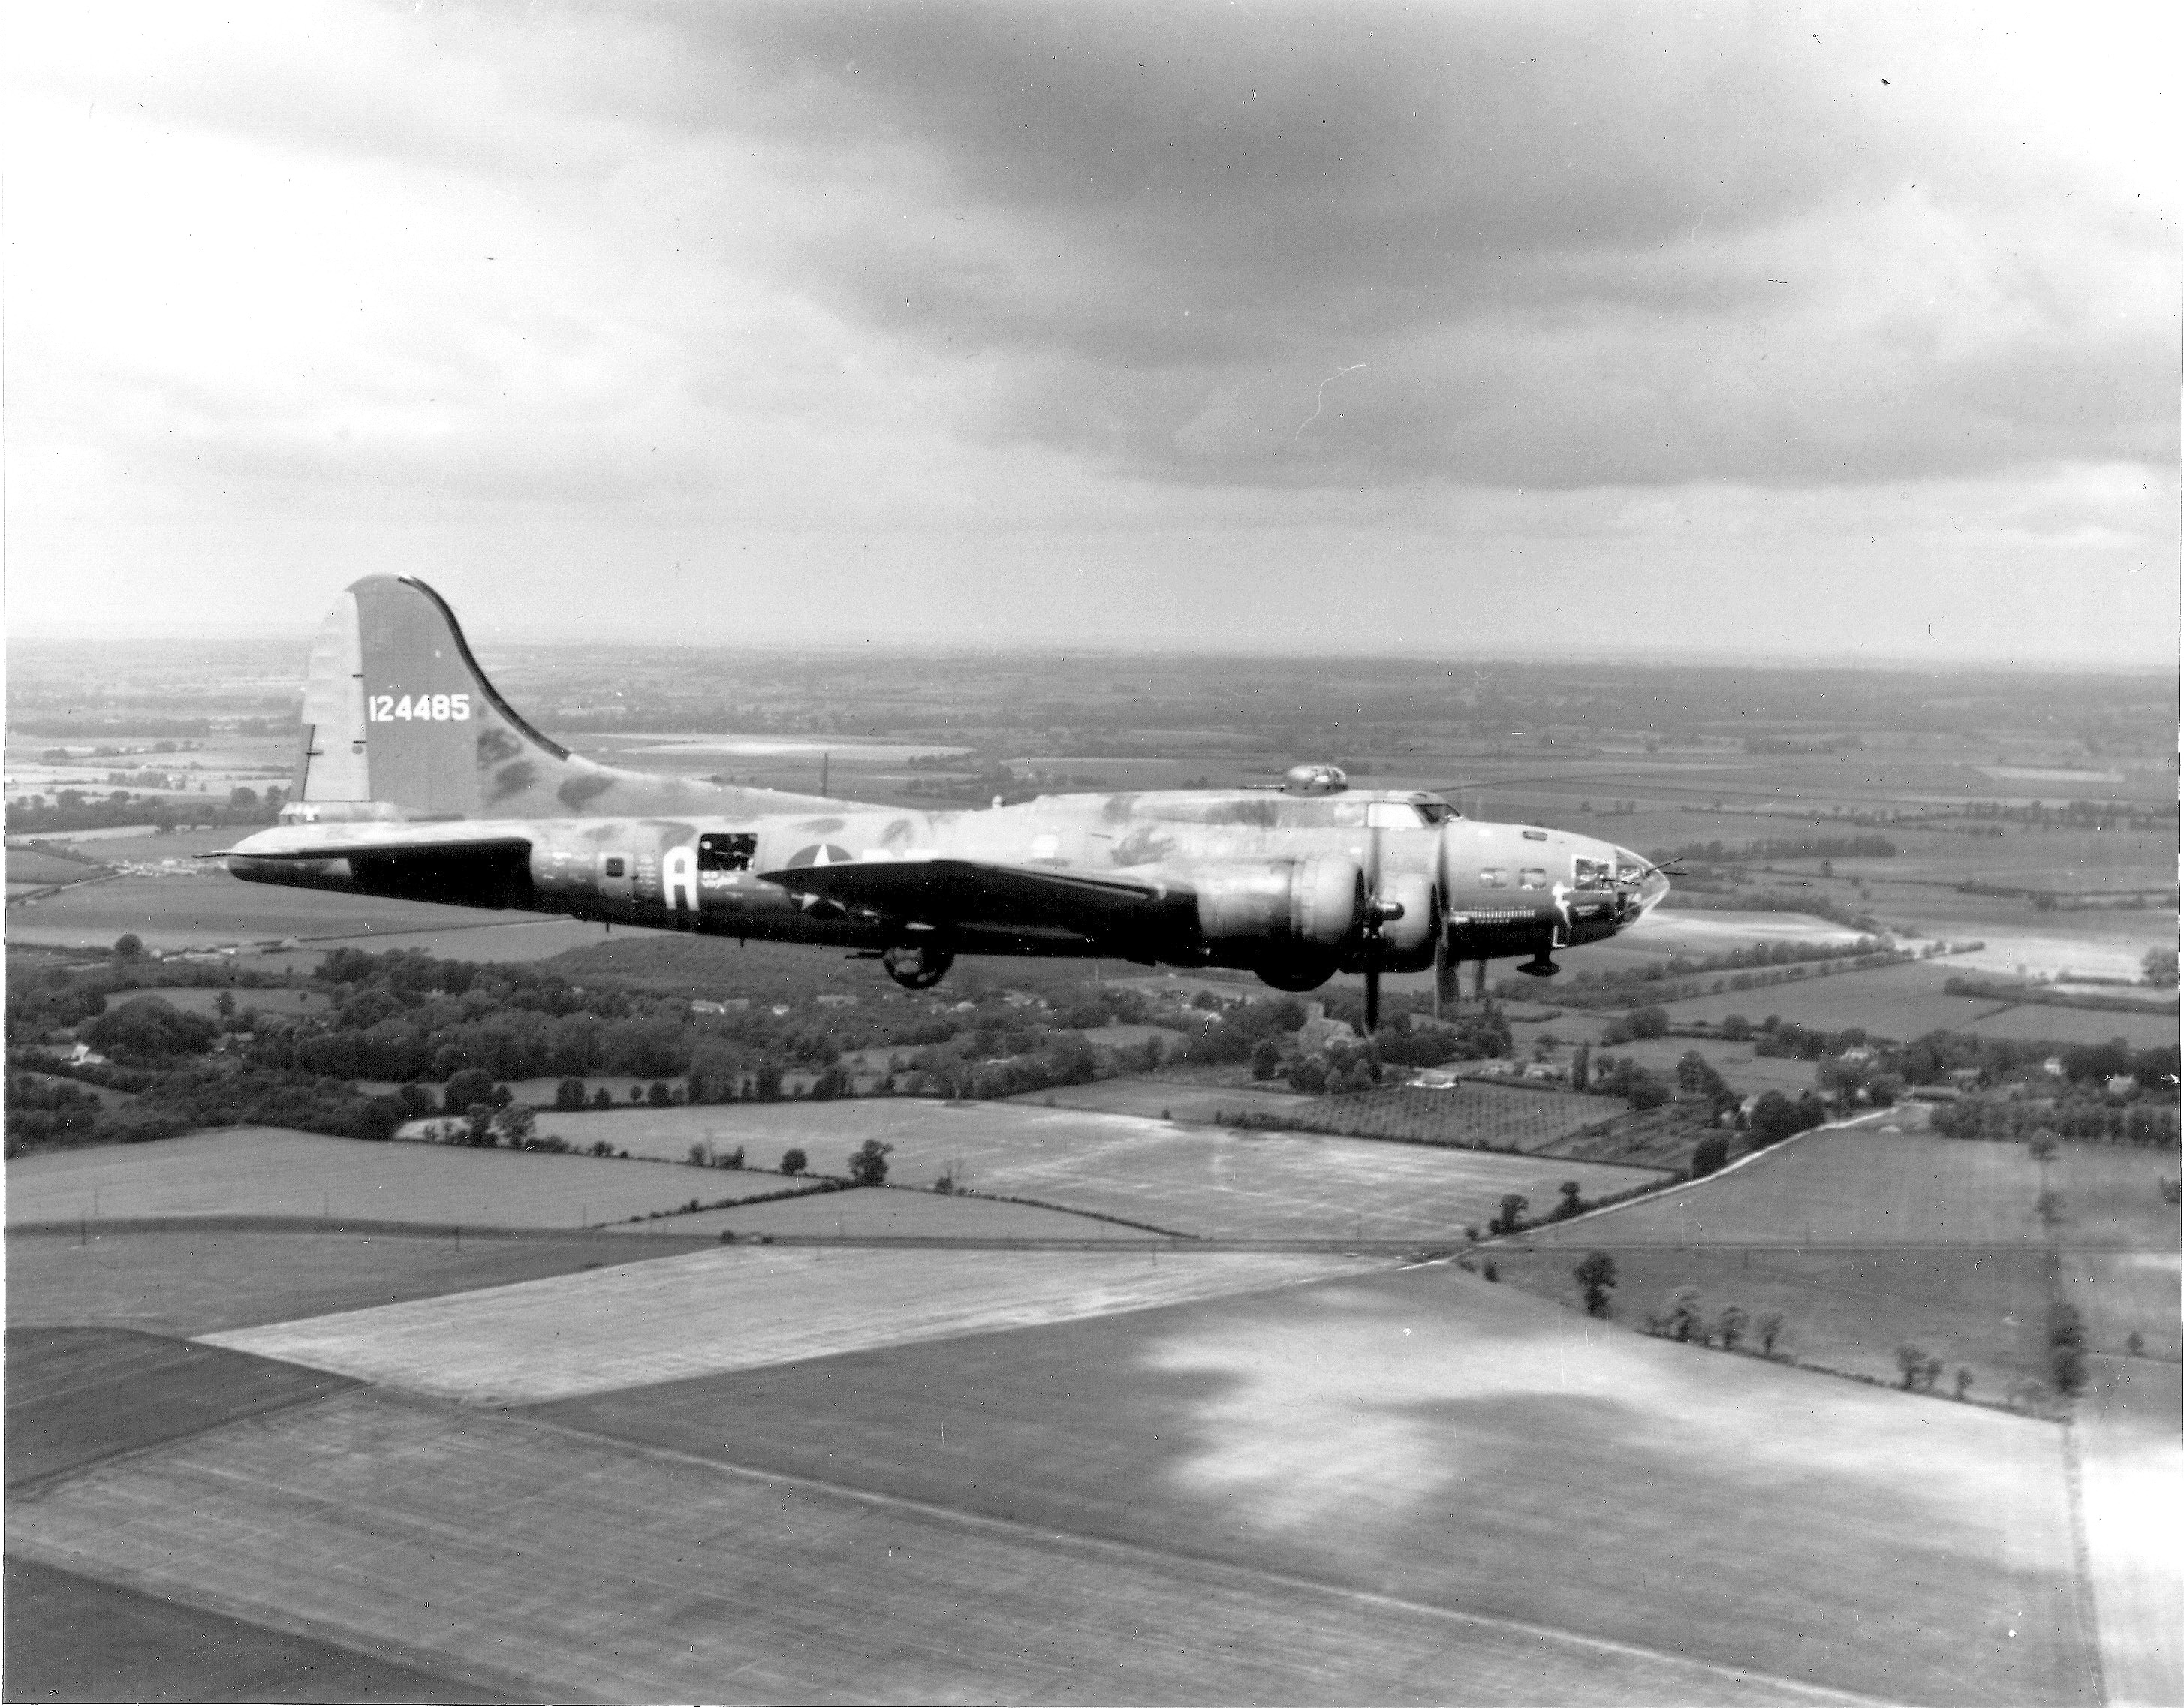 https://upload.wikimedia.org/wikipedia/commons/2/2a/Memphis_Belle.jpg